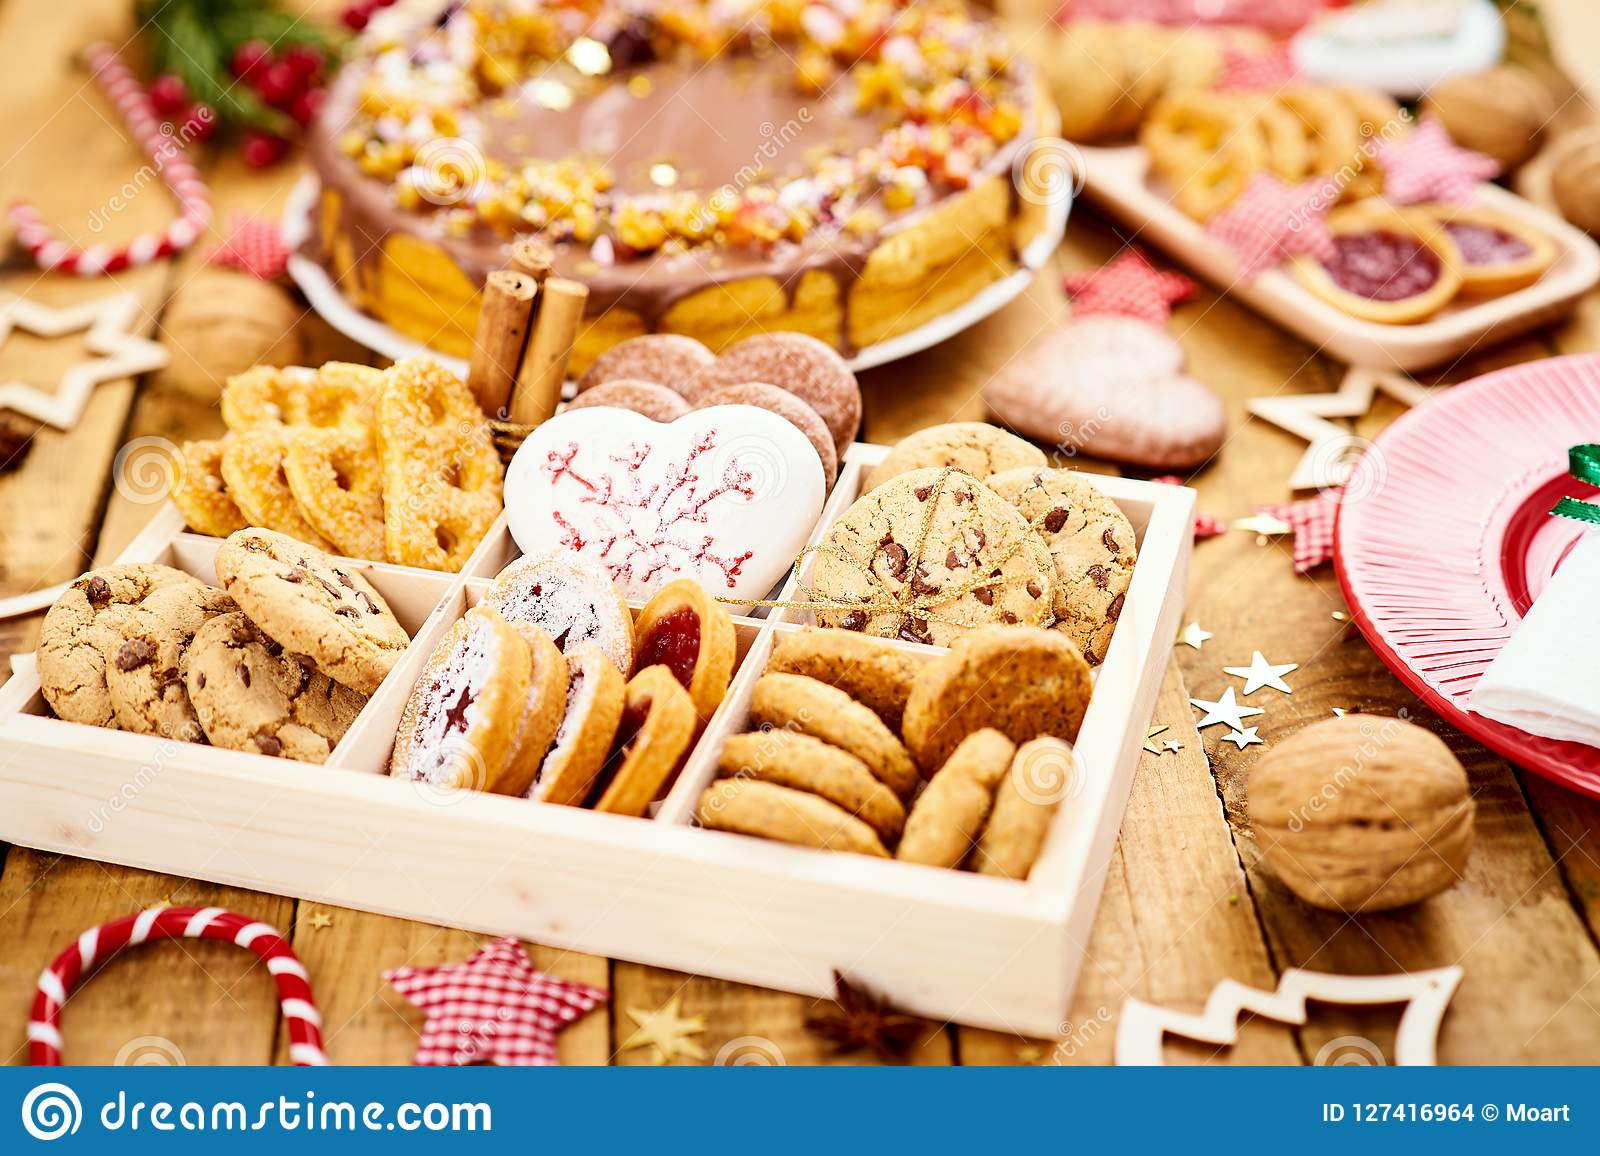 Wooden Table With Delicious Christmas Cookies In A Box And Various